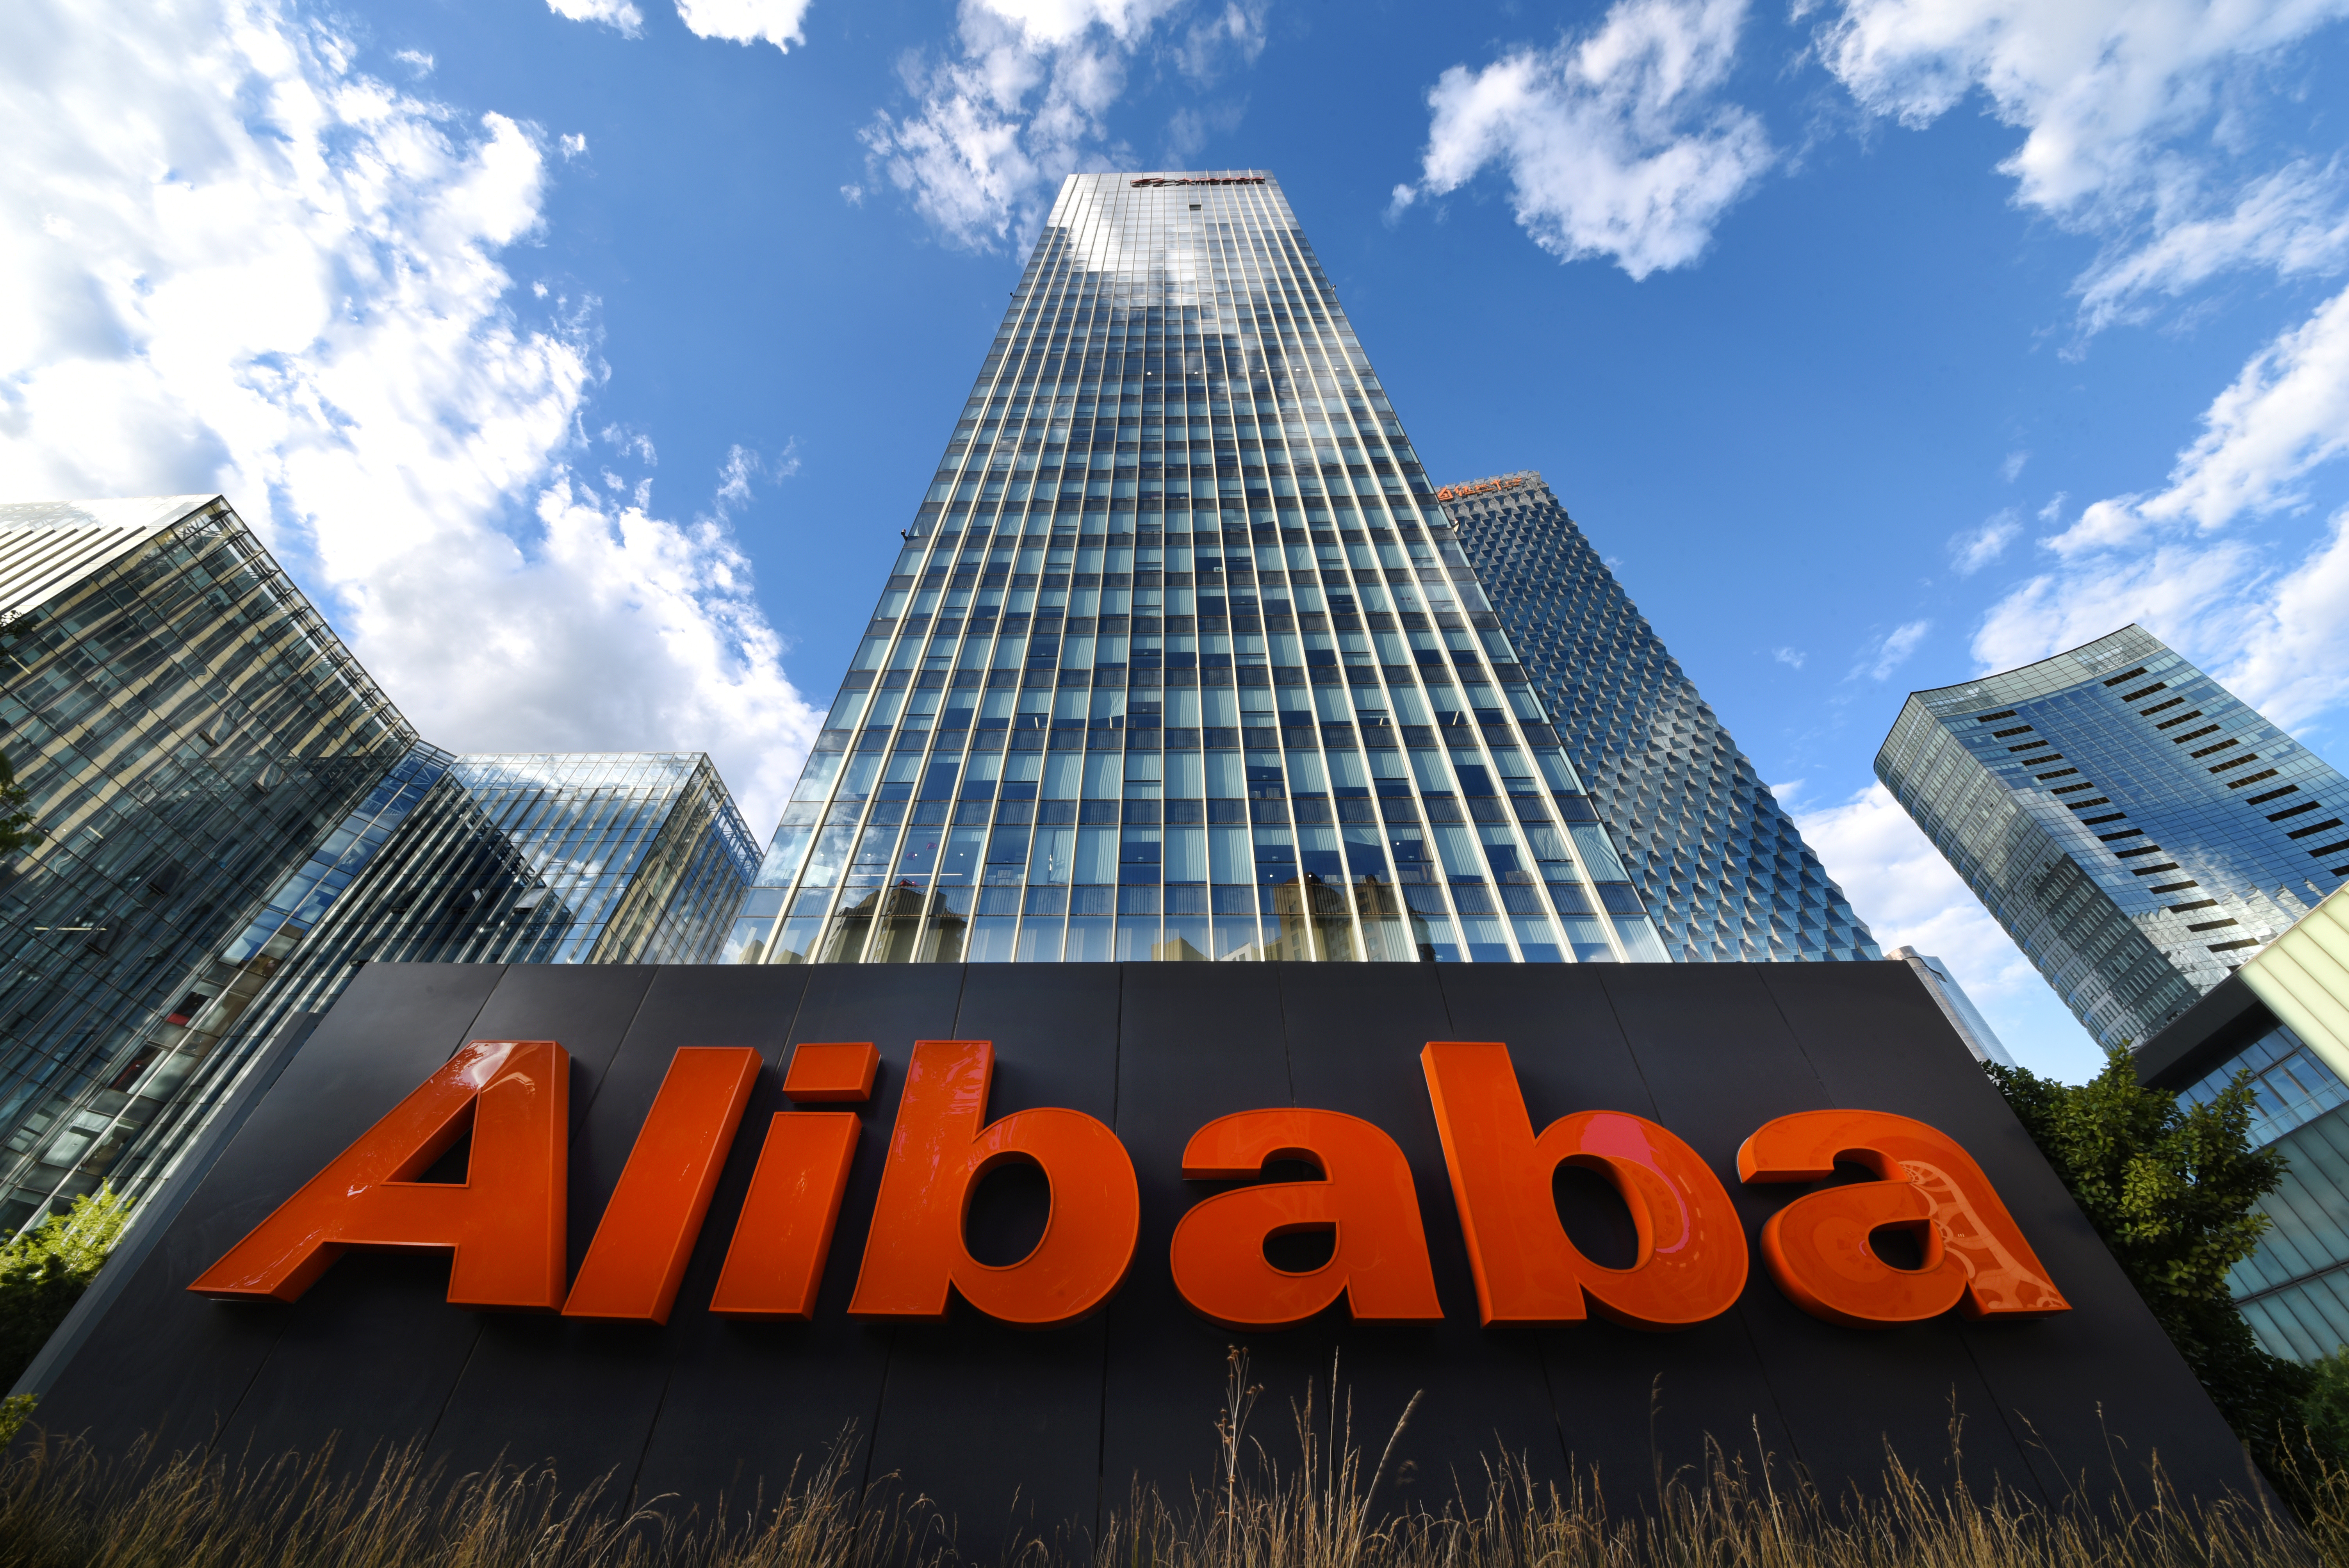 The company sign of Alibaba Group Holding Ltd is seen outside its Beijing headquarters in China June 29, 2019. Picture taken June 29, 2019. REUTERS/Stringer  ATTENTION EDITORS - THIS IMAGE WAS PROVIDED BY A THIRD PARTY. CHINA OUT.